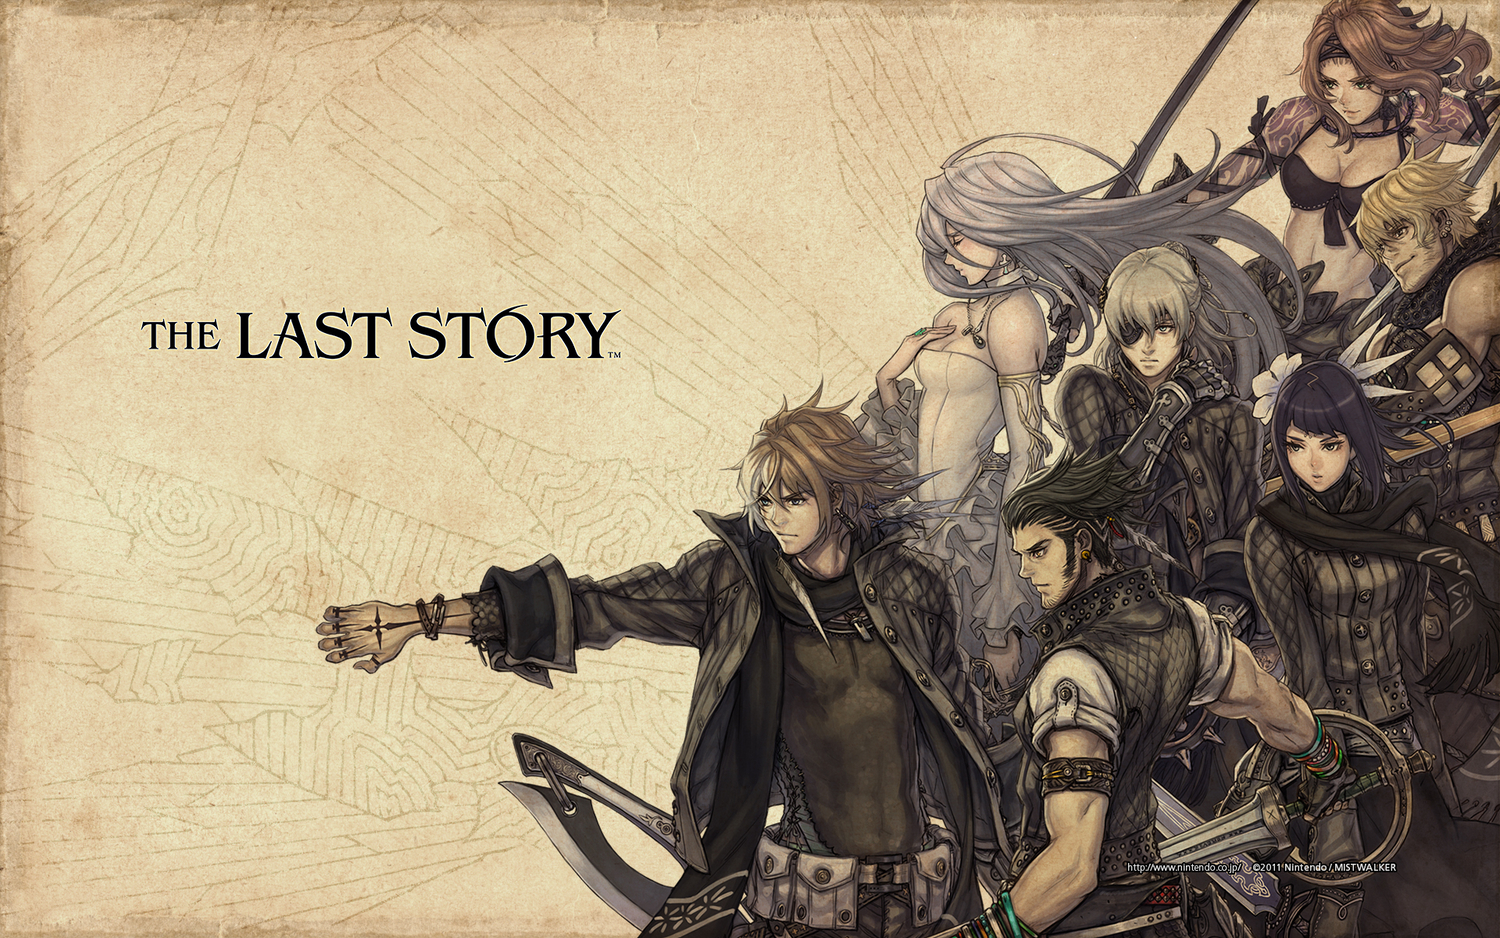 Limited Edition For The Last Story